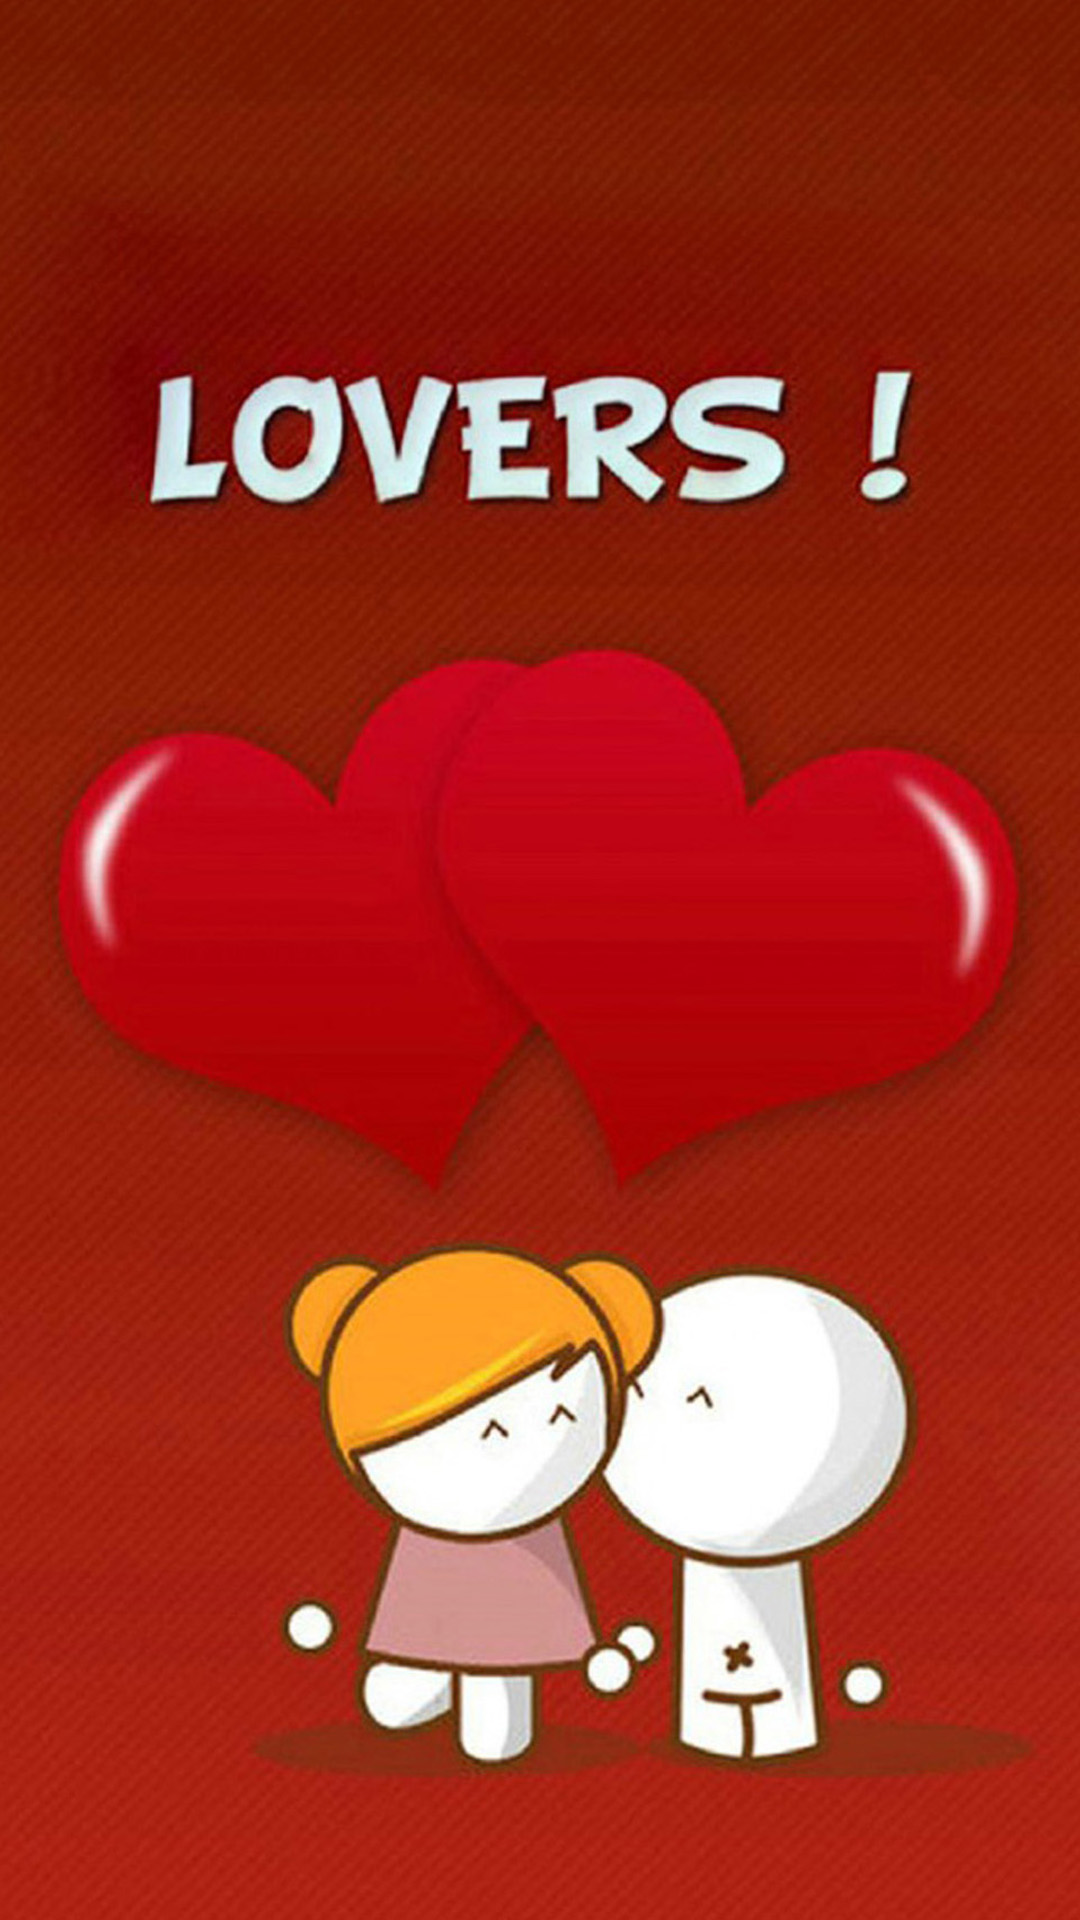 Simple Cartoon Love HD Wallpaper For Android - Lovers  HD_4590100.jpg